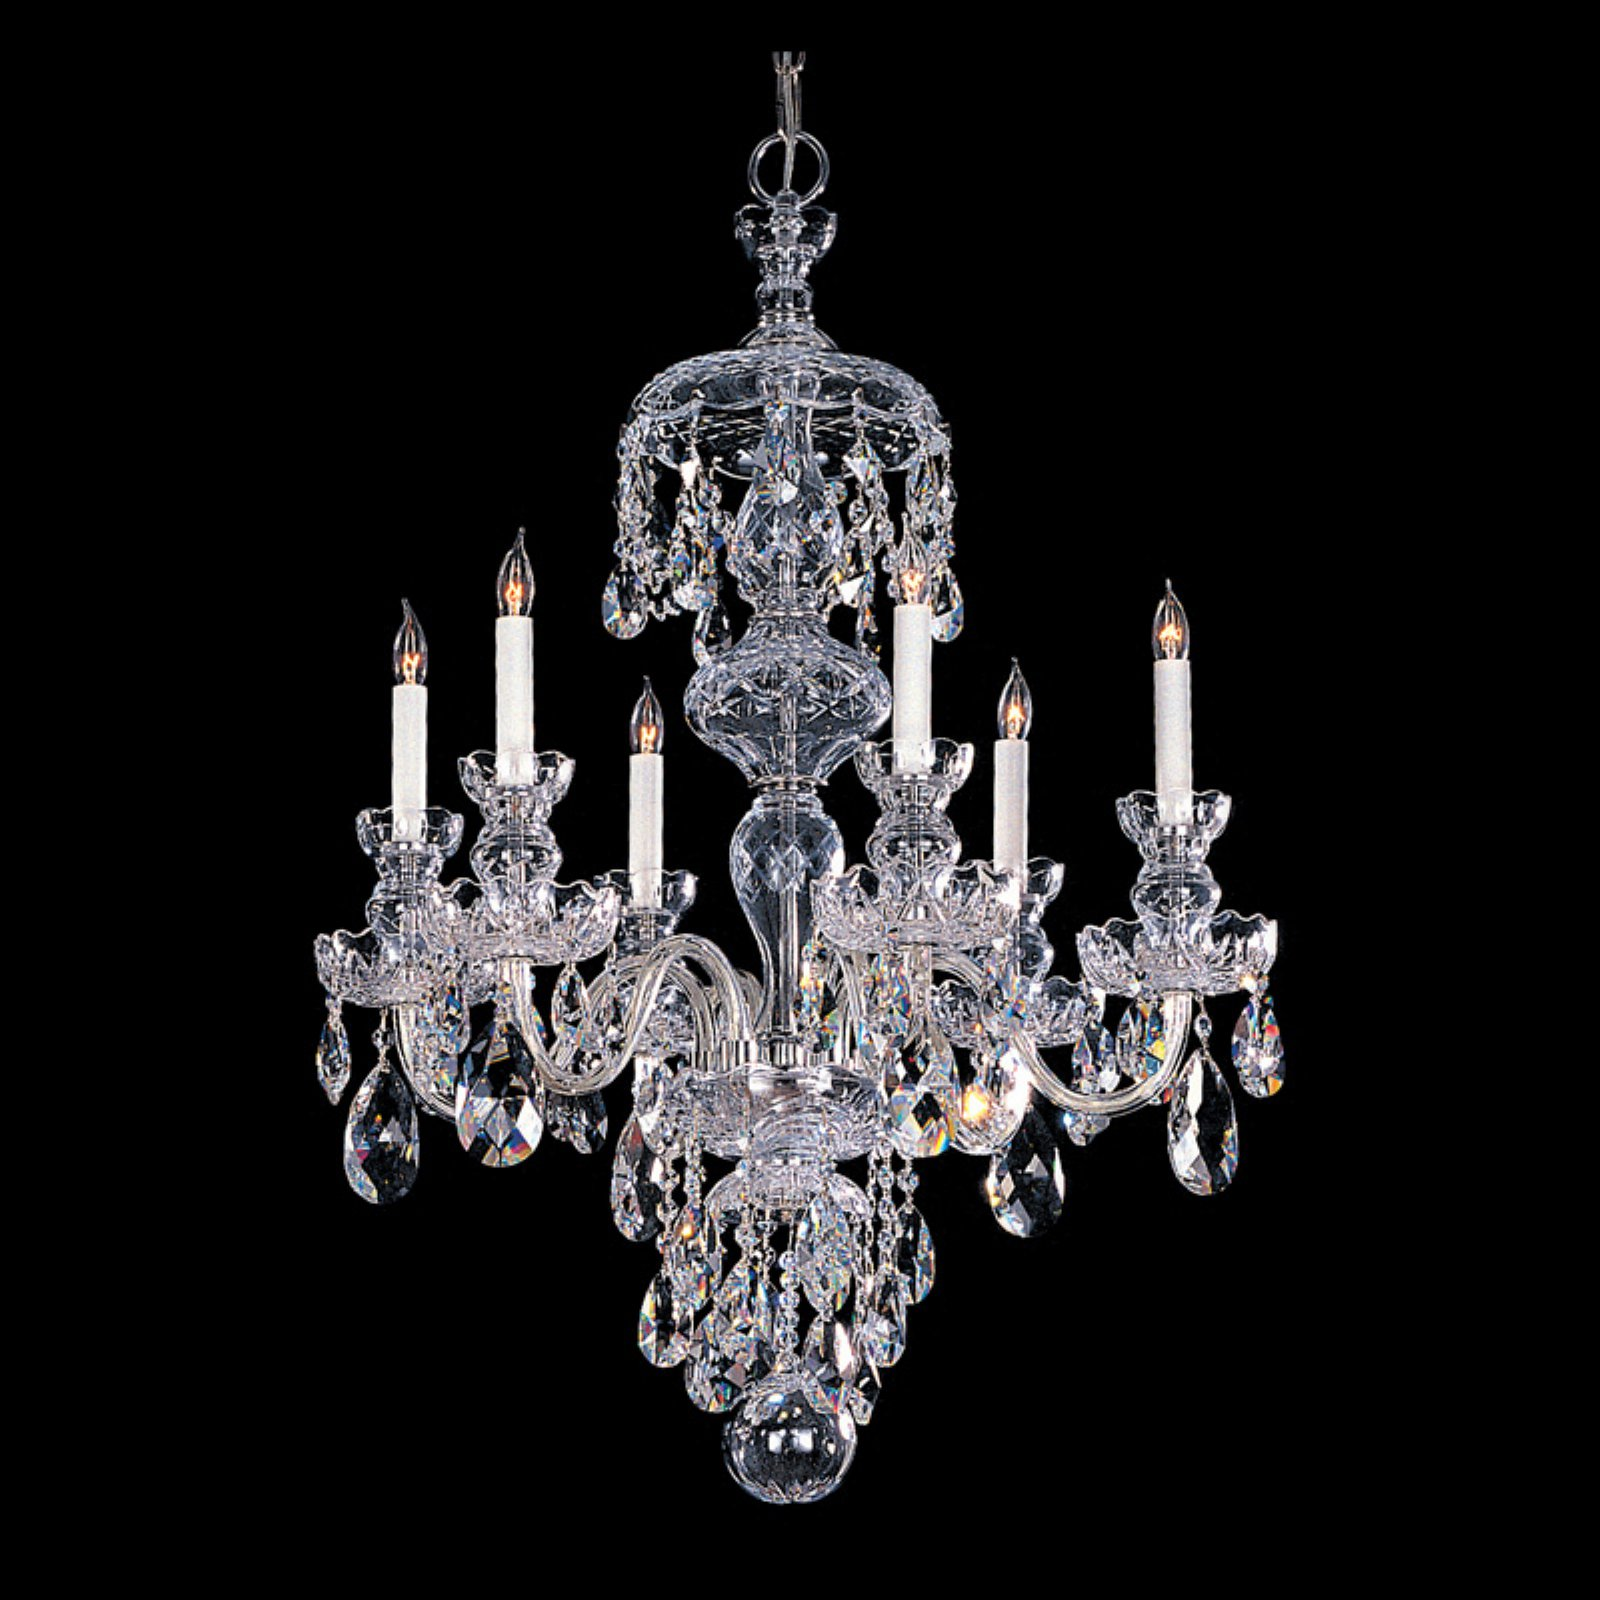 Crystorama 1146-CH-CL-MWP Traditional Crystal Chandelier 25W in. by Crystorama